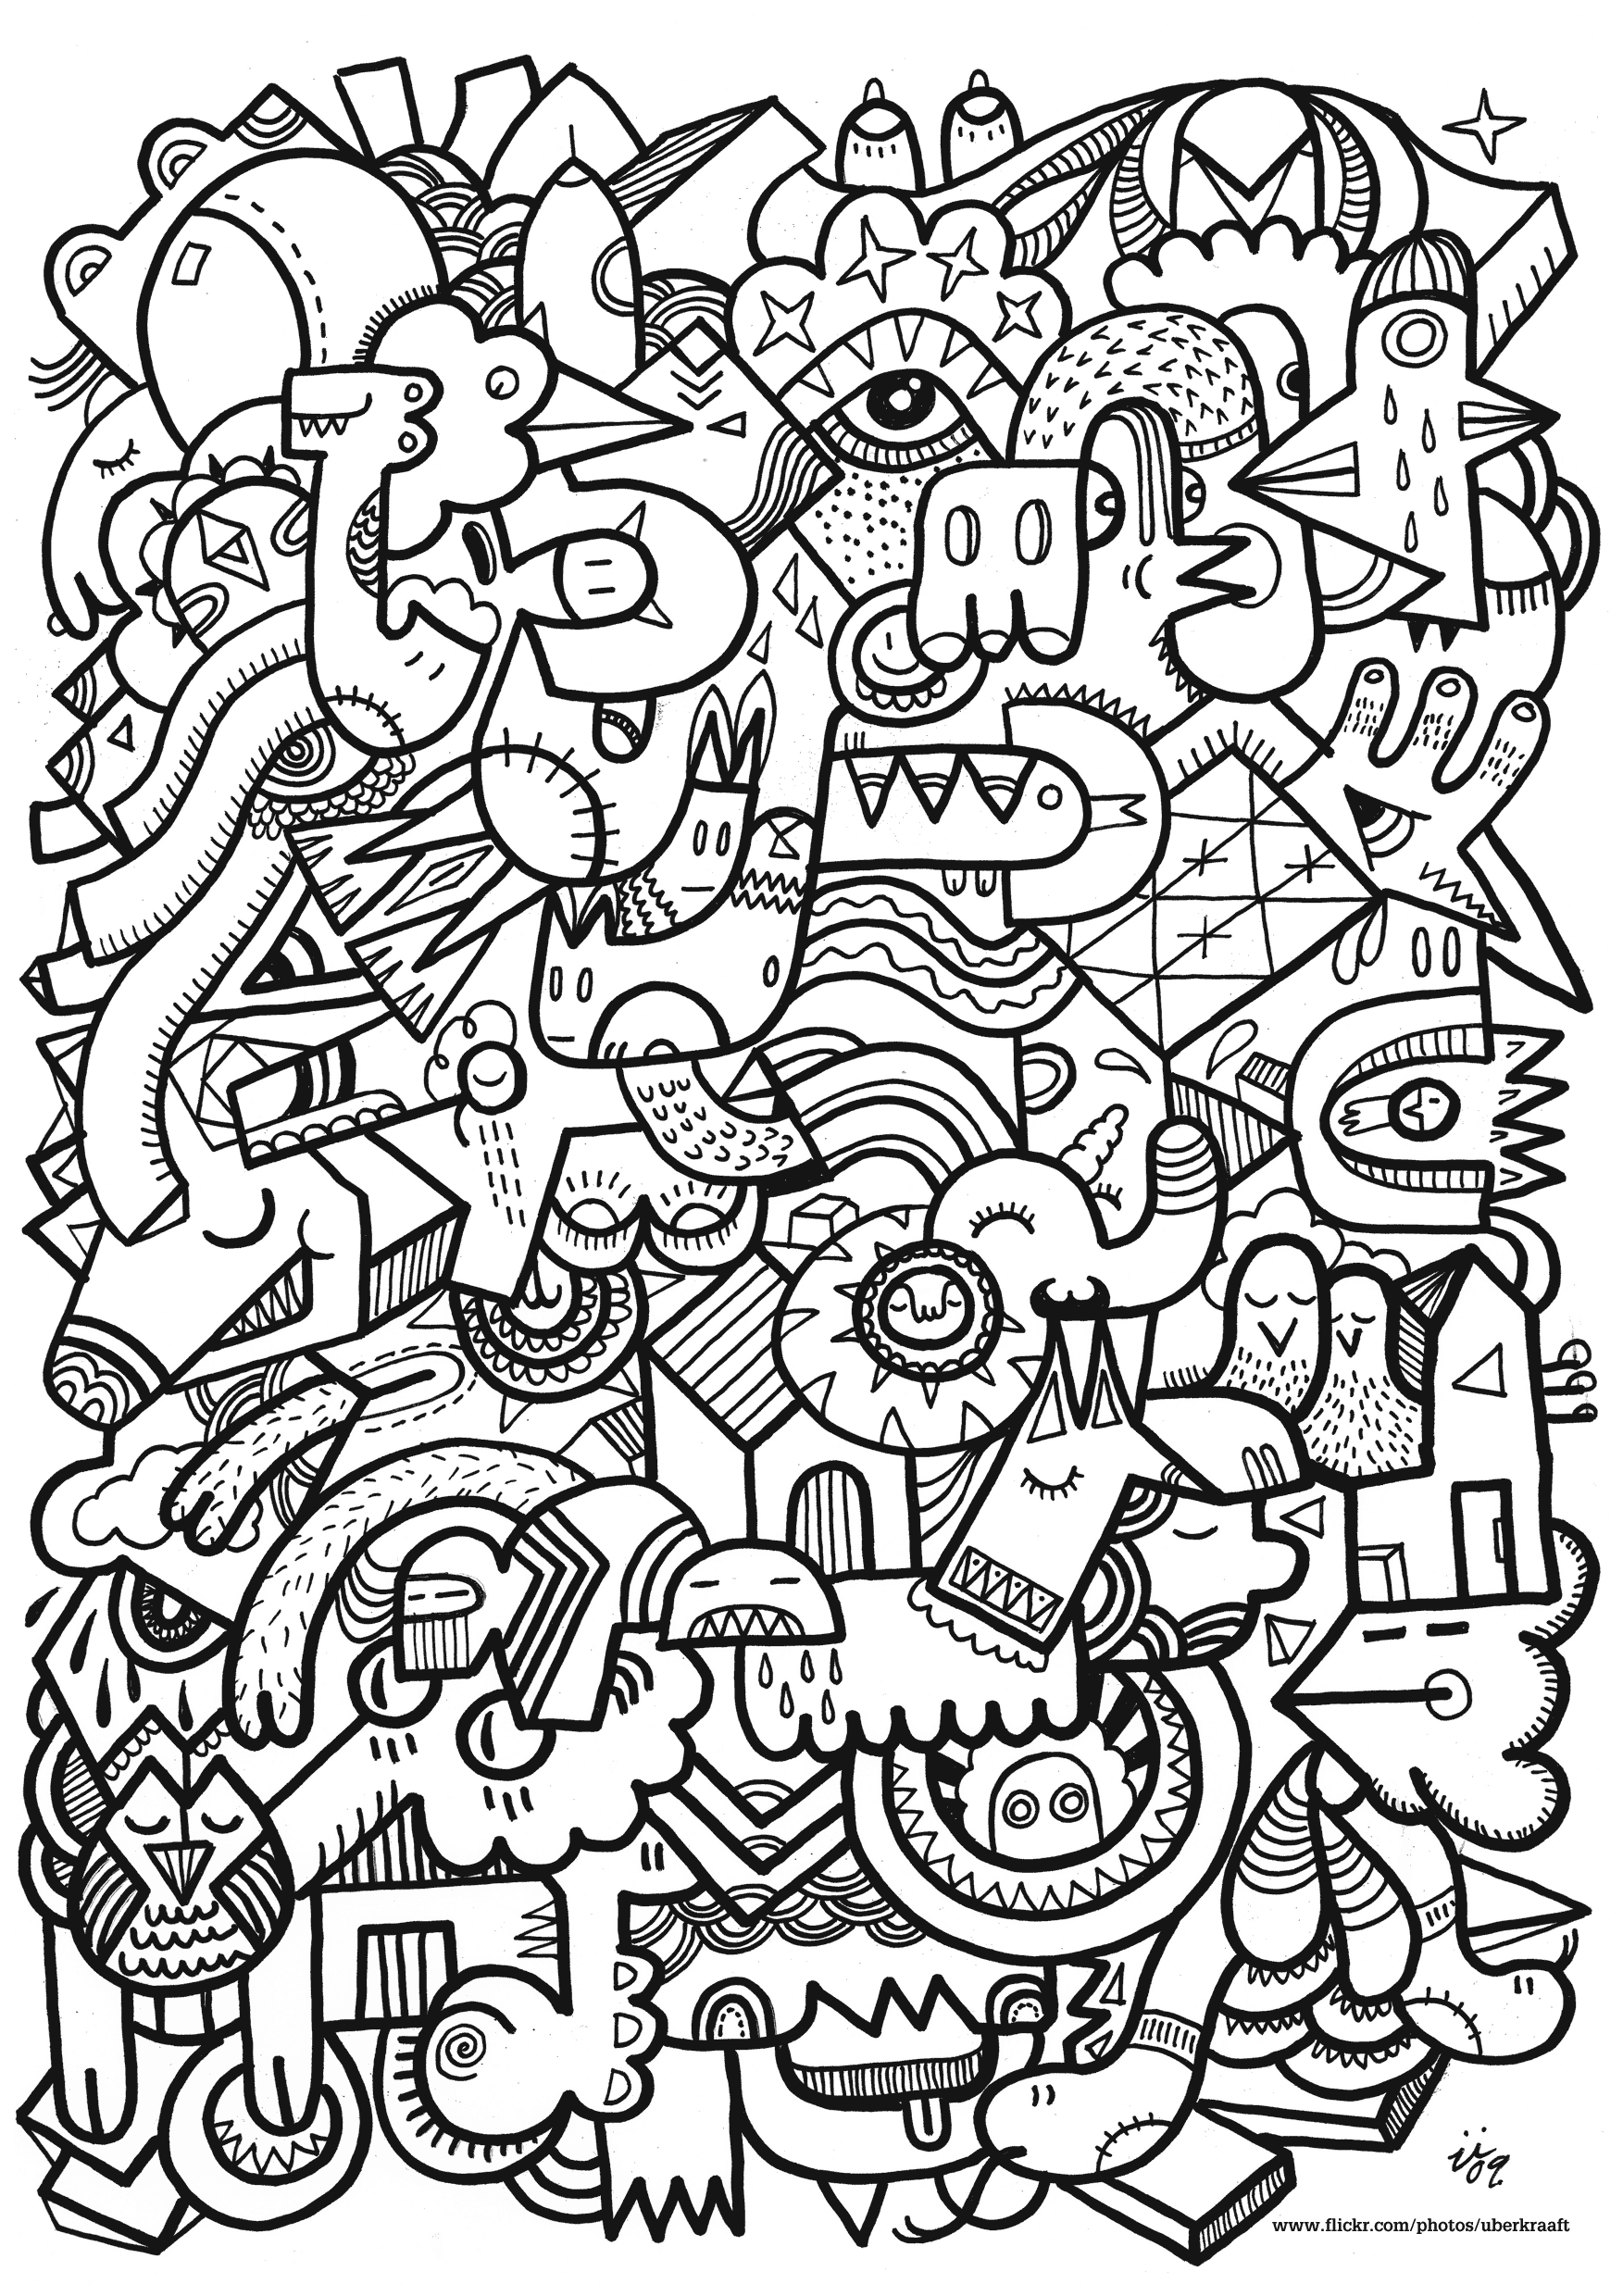 Patterns Difficult Colouring Pages | dessin, illustration et ...